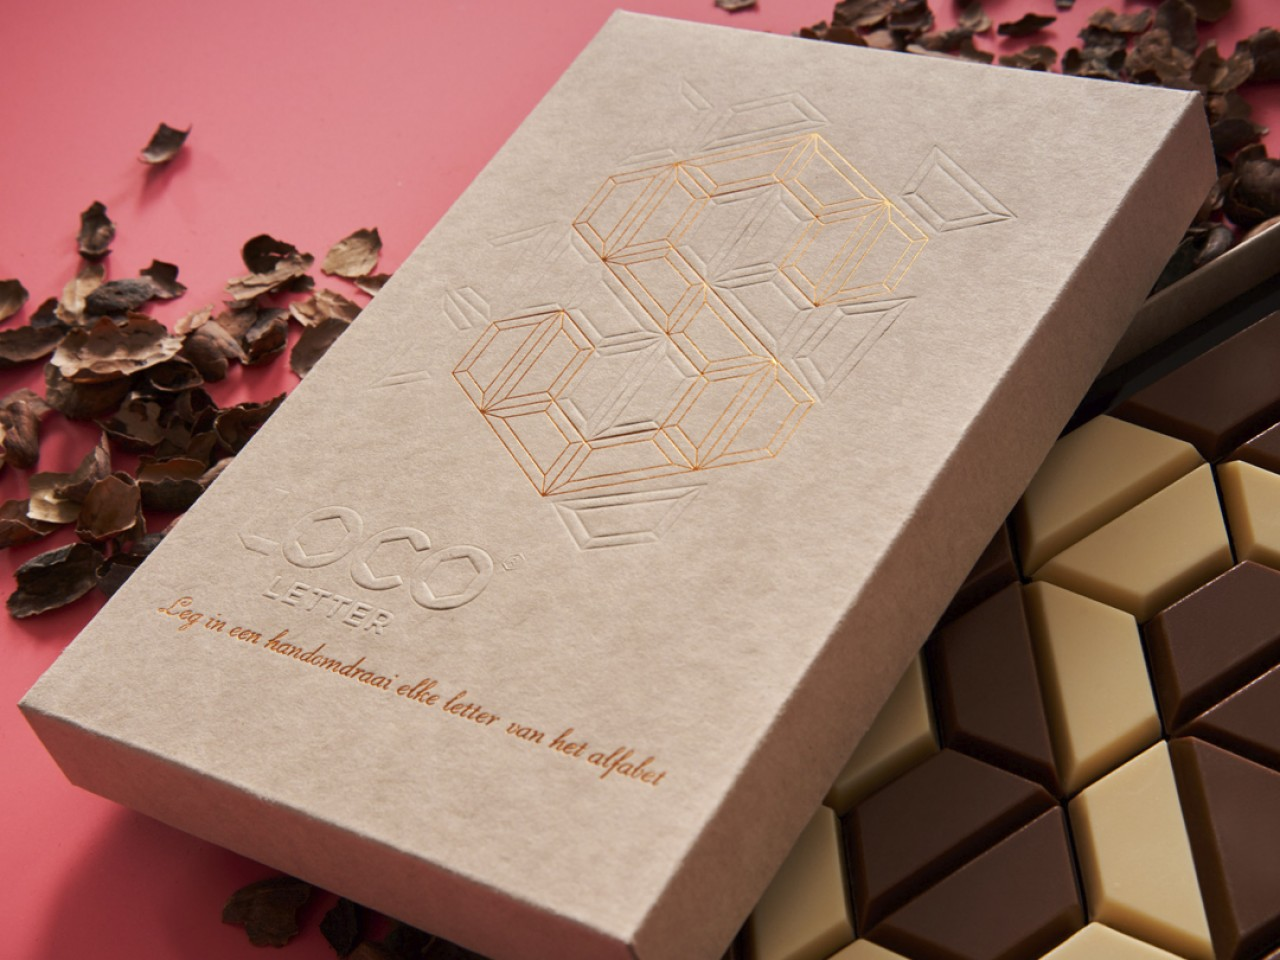 Loco Letter - Utilising waste materials to create a desirable and sustainable packaging design for premium chocolate.